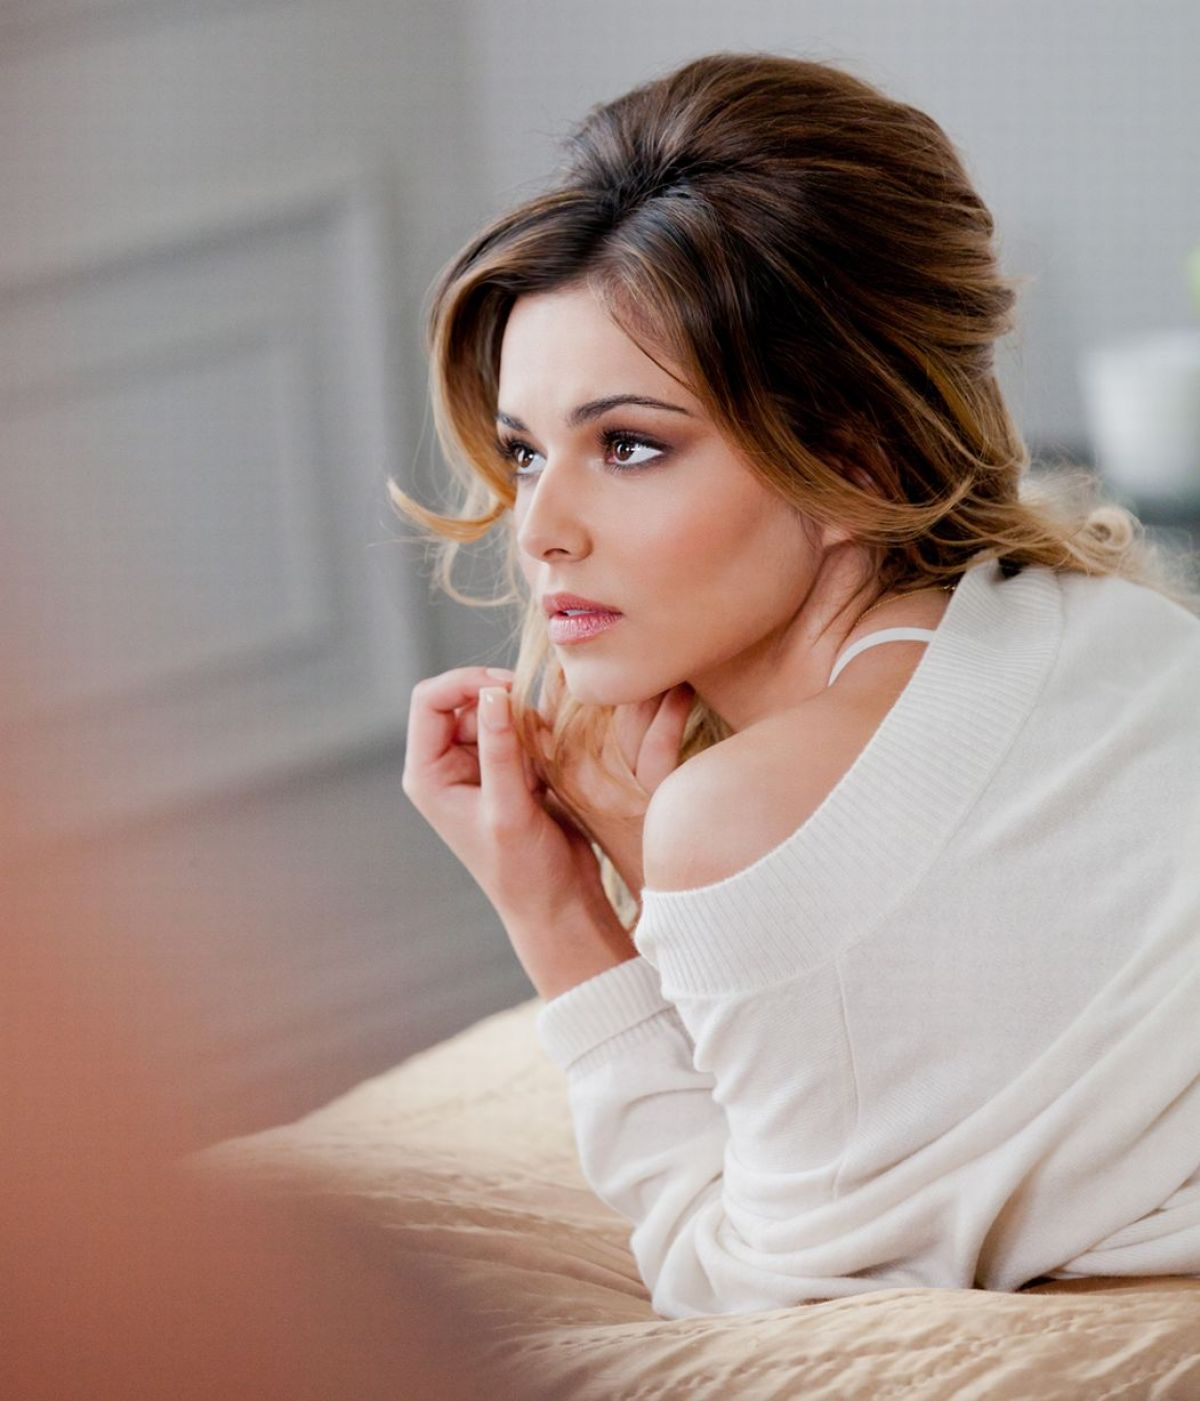 Cheryl Cole L'Oreal Paris Elnett Satin Hairspray Photoshoot